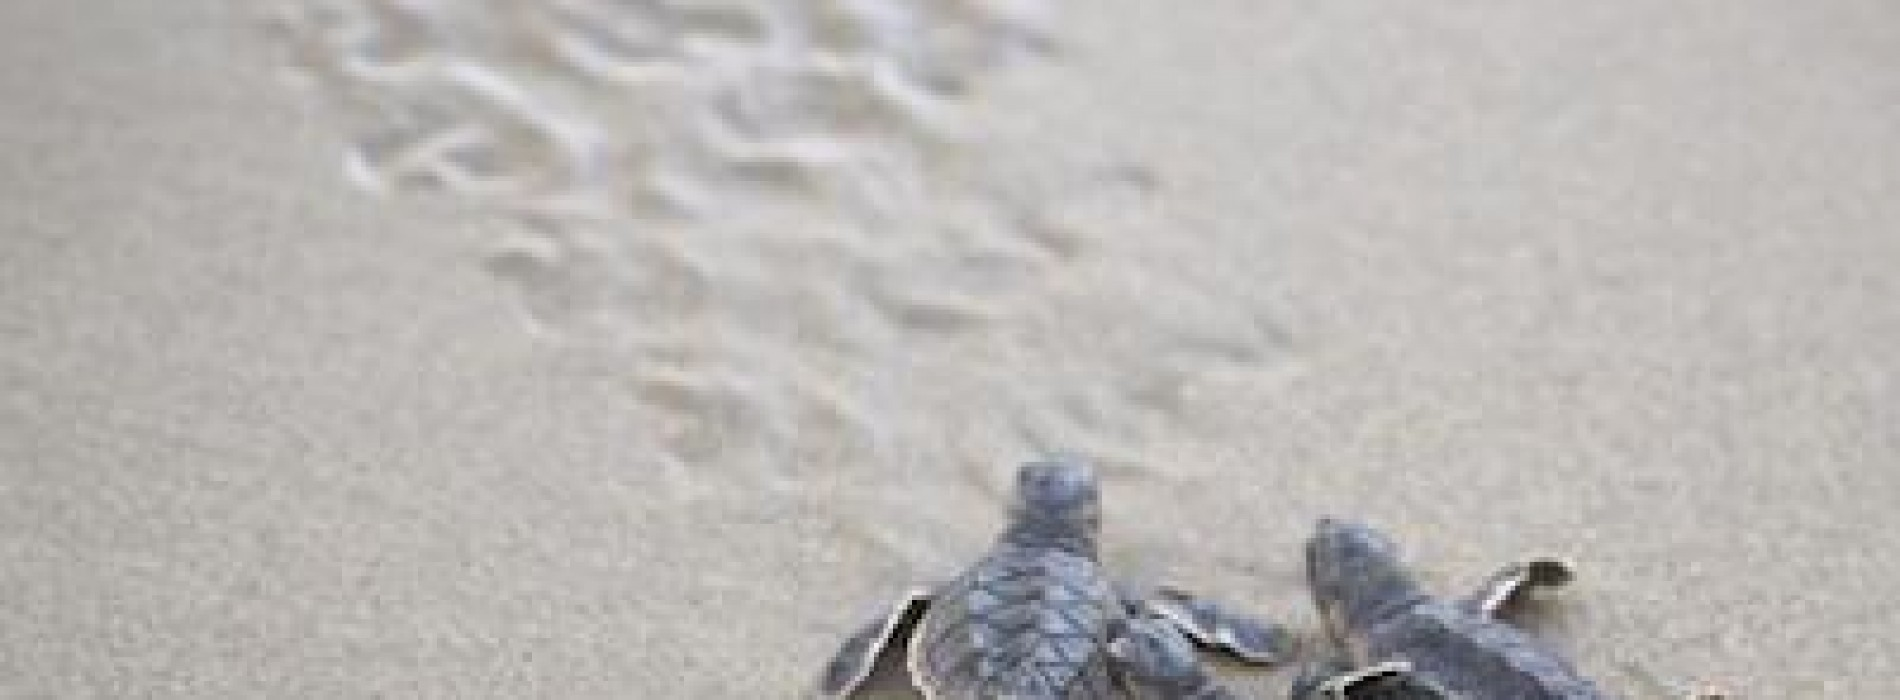 Turtle season in Oman has begun